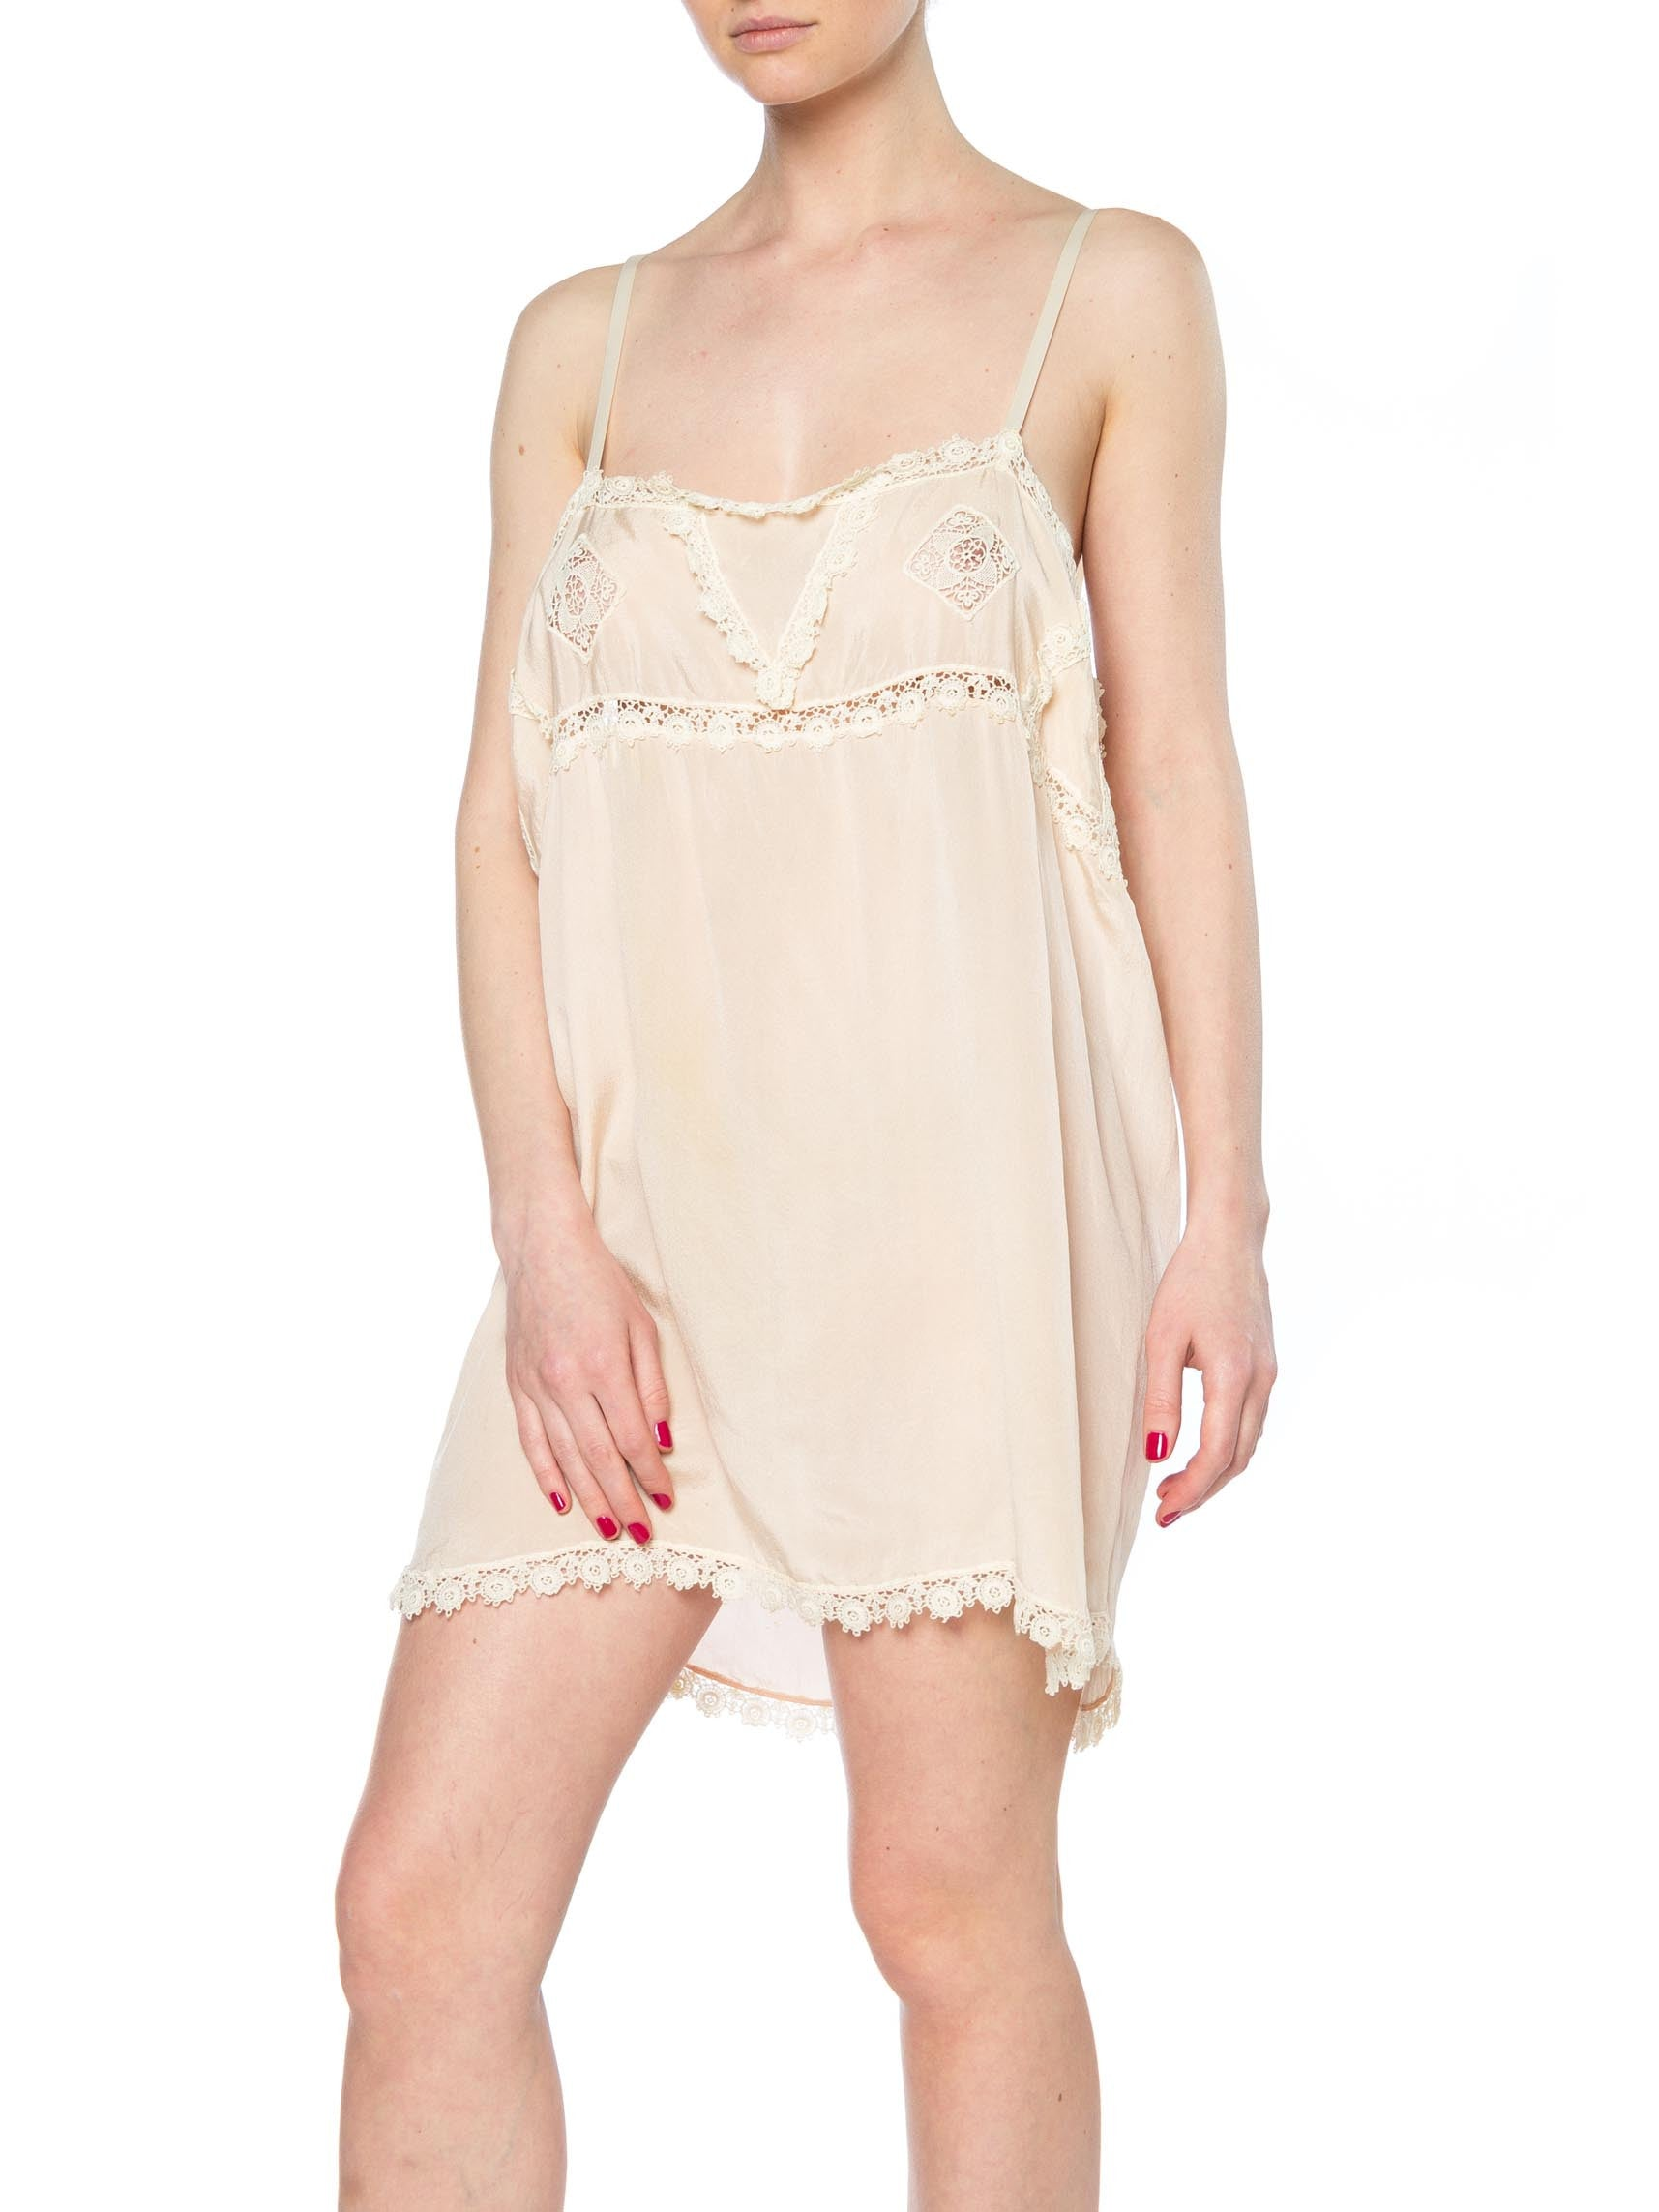 1920S Blush Pink Silk & Lace Slip Dress Negligee